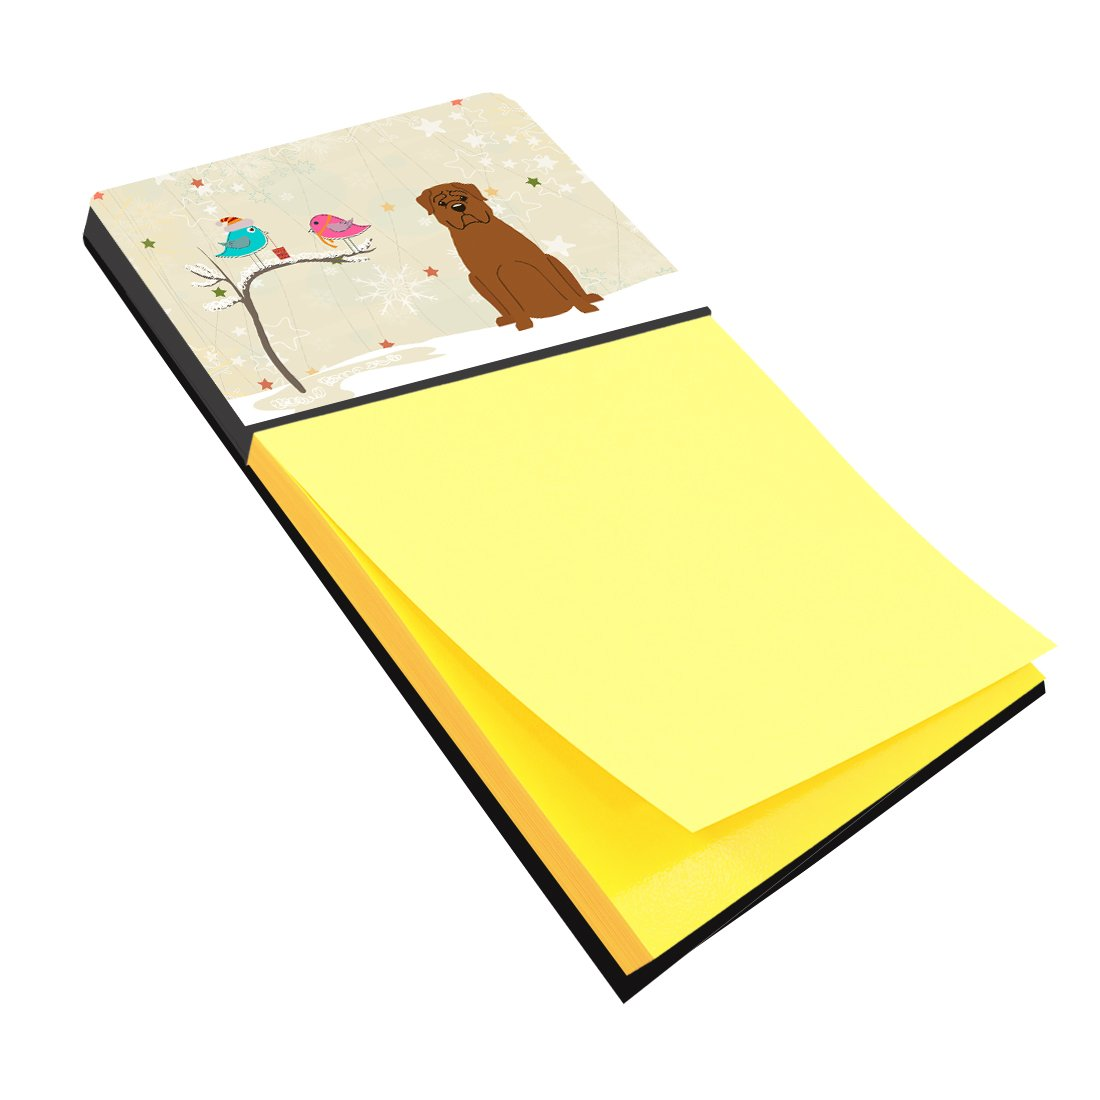 Christmas Presents between Friends Dogue de Bourdeaux Sticky Note Holder BB2545SN by Caroline's Treasures